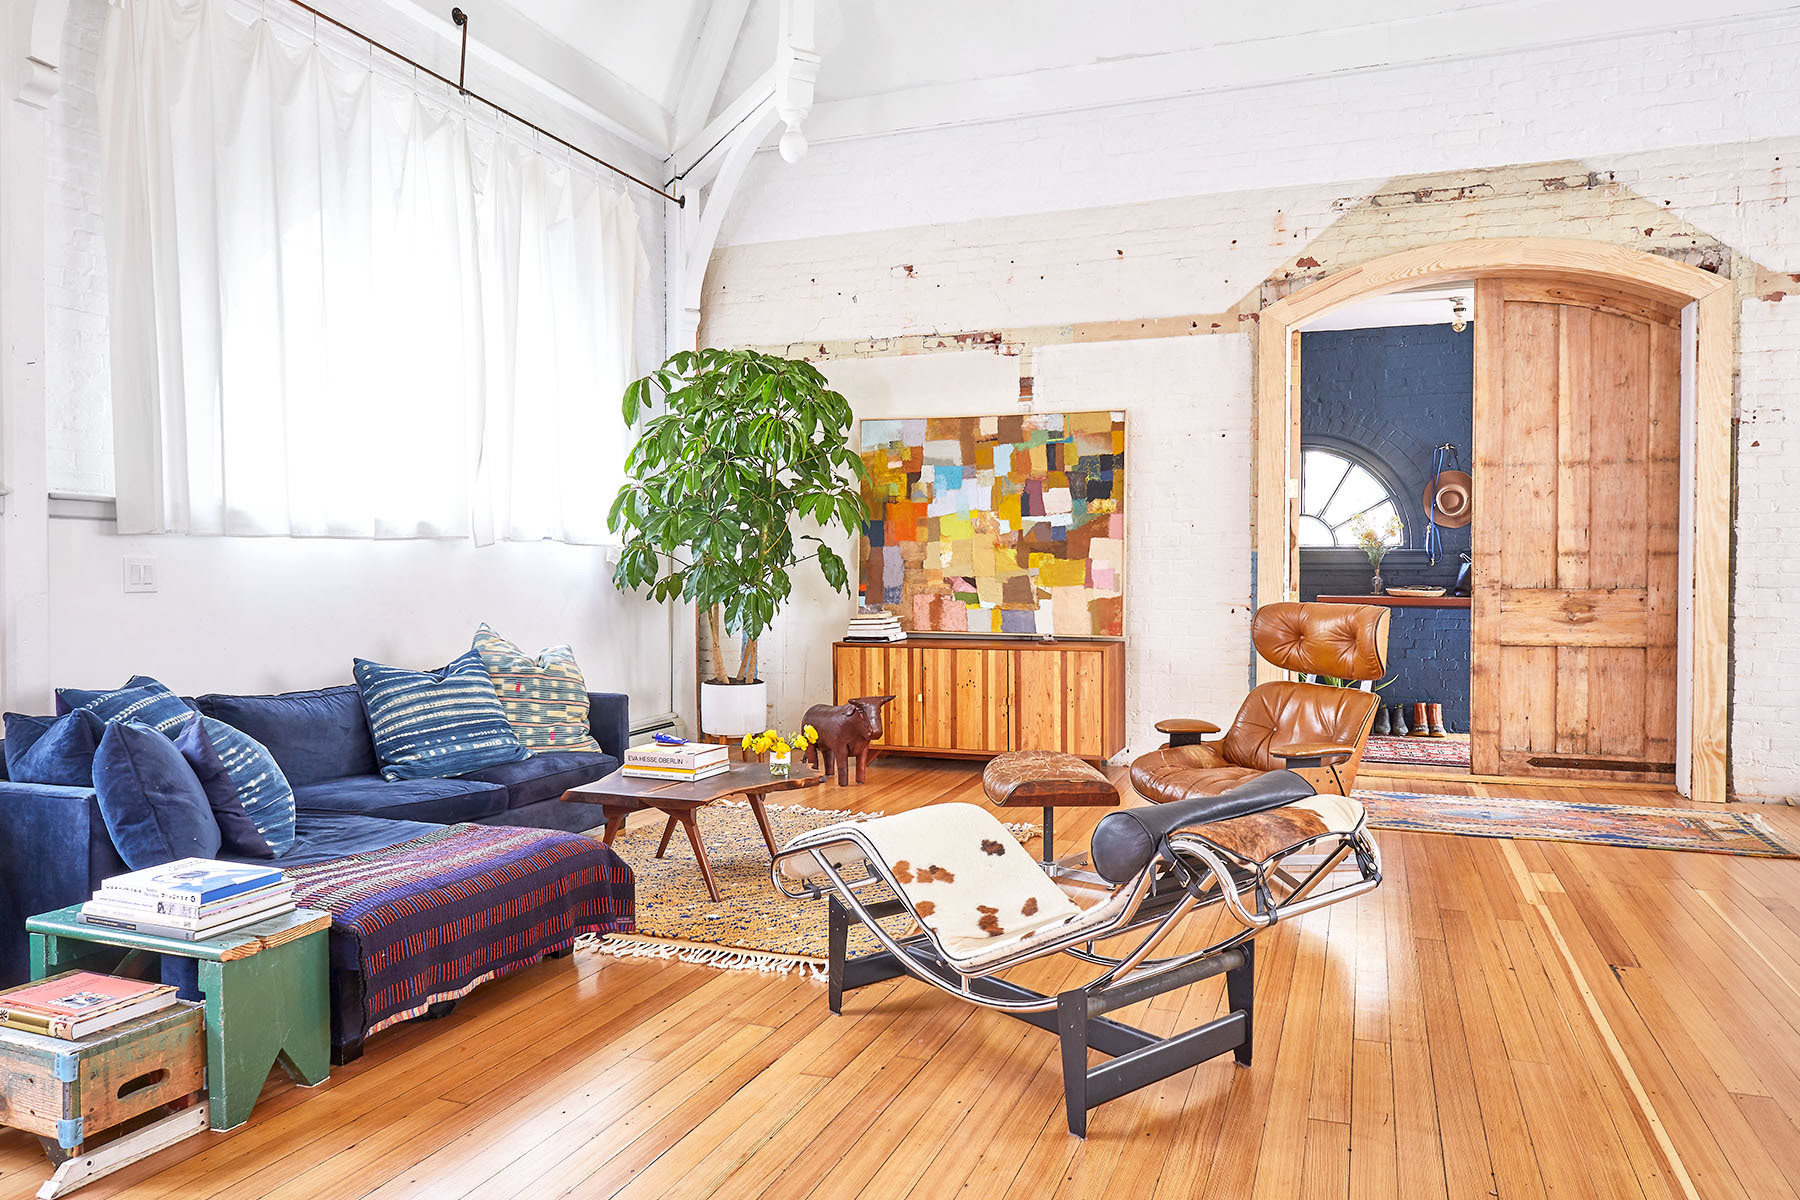 An open living space, complete with a vintage blue sectional sofa and brown leather Eames lounge chair, gives the home a lived-in, layered appeal. Benjamin Moore Paint | Charlotte Perriand Chaise | Abercrombie & Fitch Vintage Ottoman | Vintage Sofa | Jungil Hong and Andrew Mau Rug | Jamison Sellers Buffet Table | Vintage Side Table | Farrow & Ball Paint.